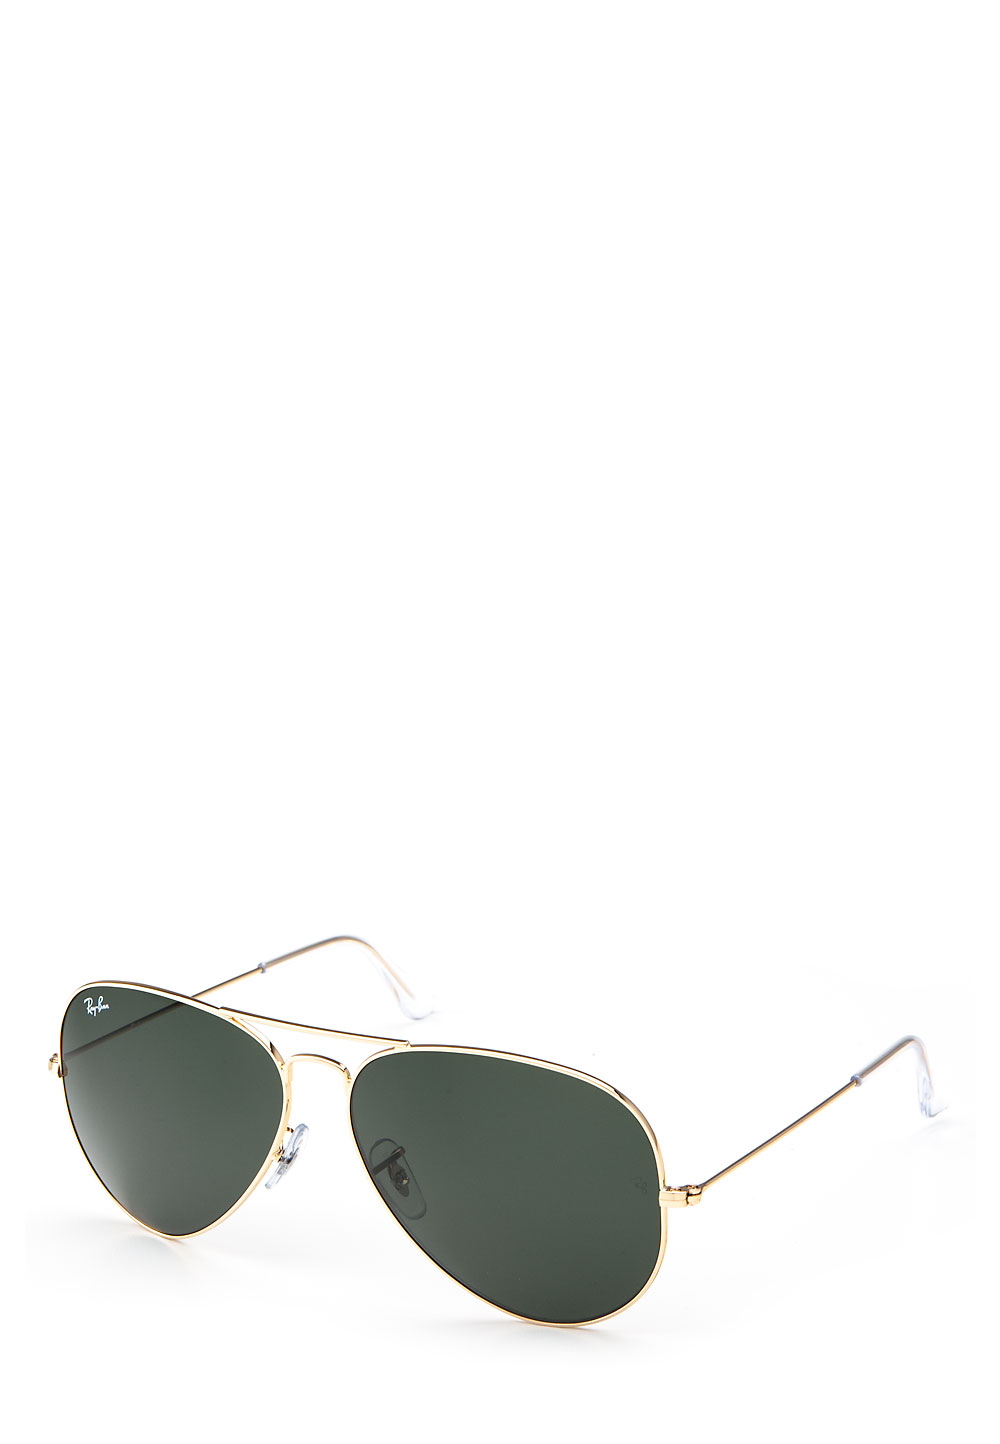 Sonnenbrille Aviator XL, UV 400, golden